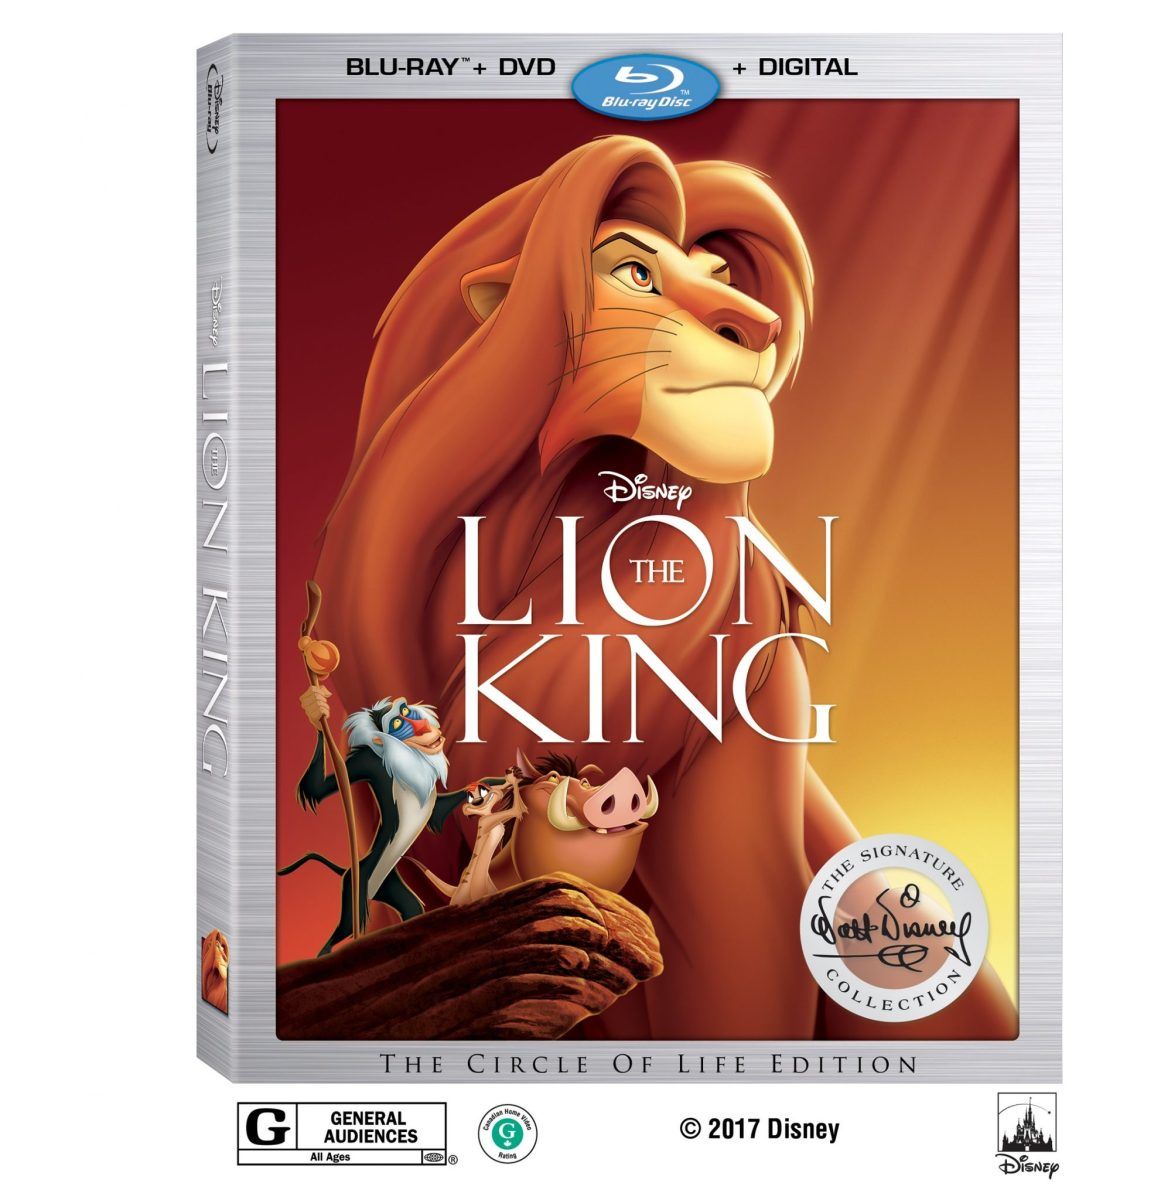 Disney's The Lion King Walt Disney Signature Collection Coming to Blu-Ray This August